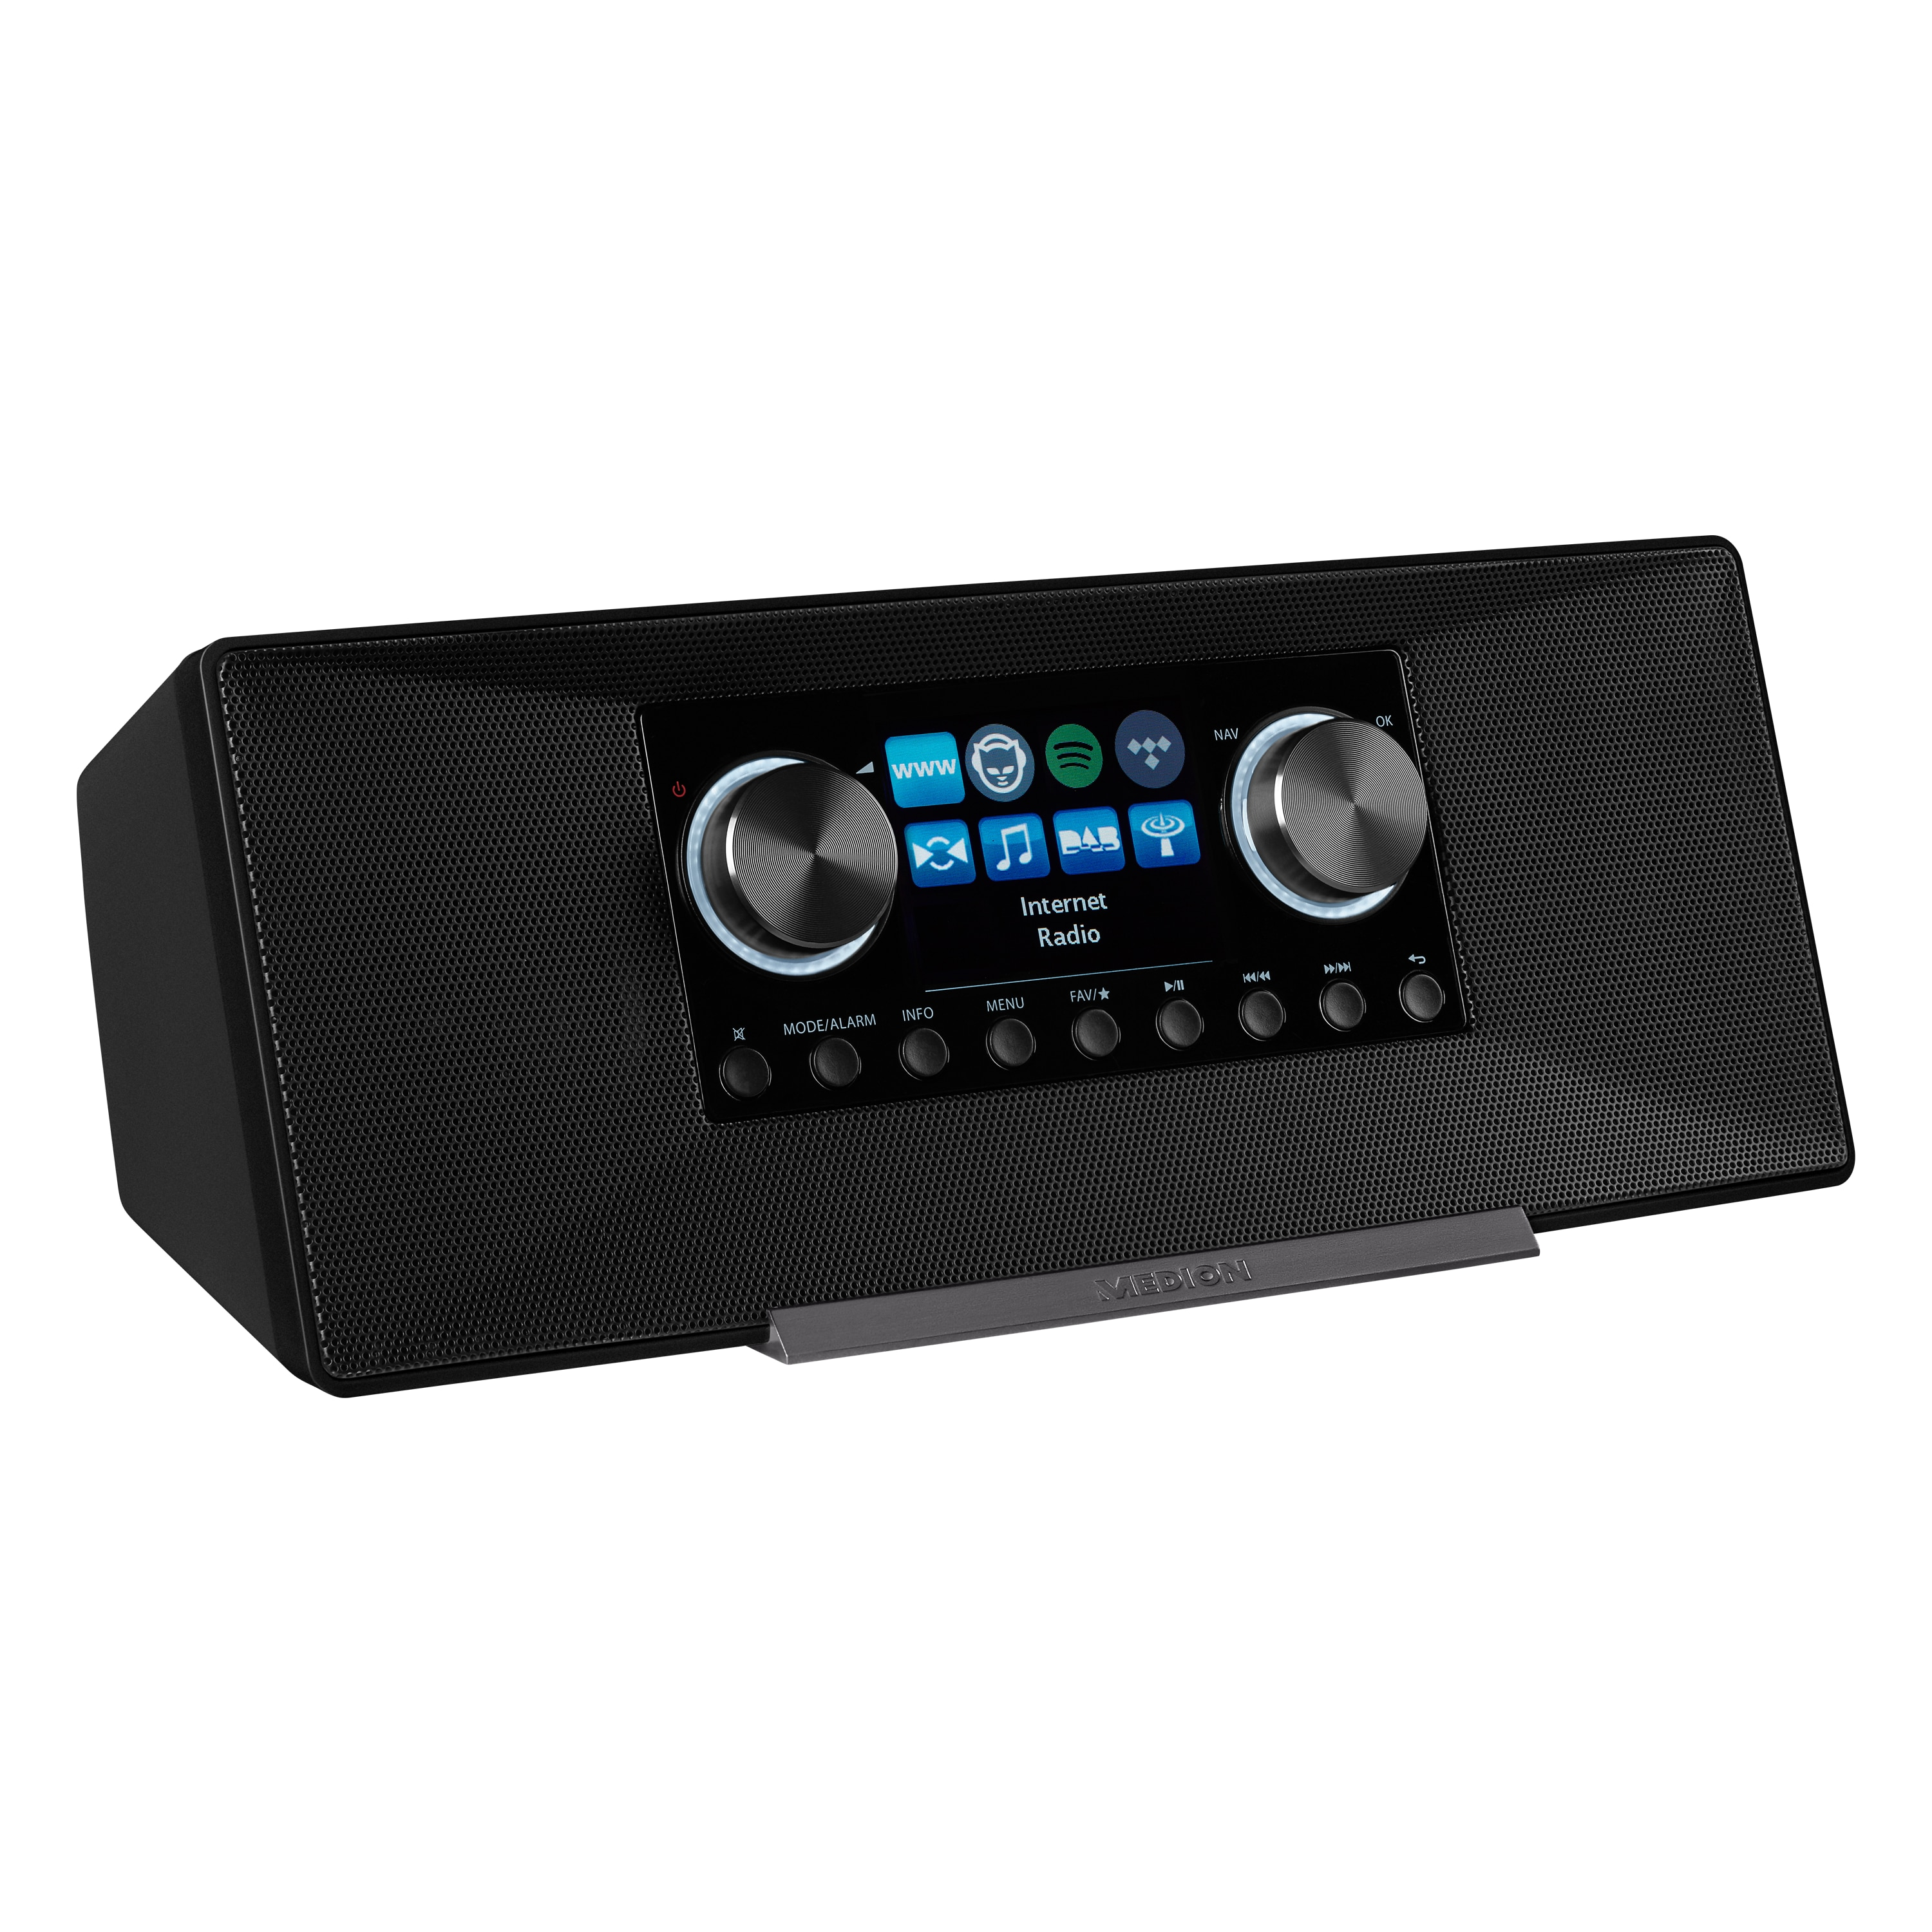 MEDION® P85289 Stereo Internetradio, 7,1 cm (2,8'') TFT-Display, DAB+/UKW-Empfänger, WLAN, DLNA, Spotify®-Connect, 2 x 6 W RMS